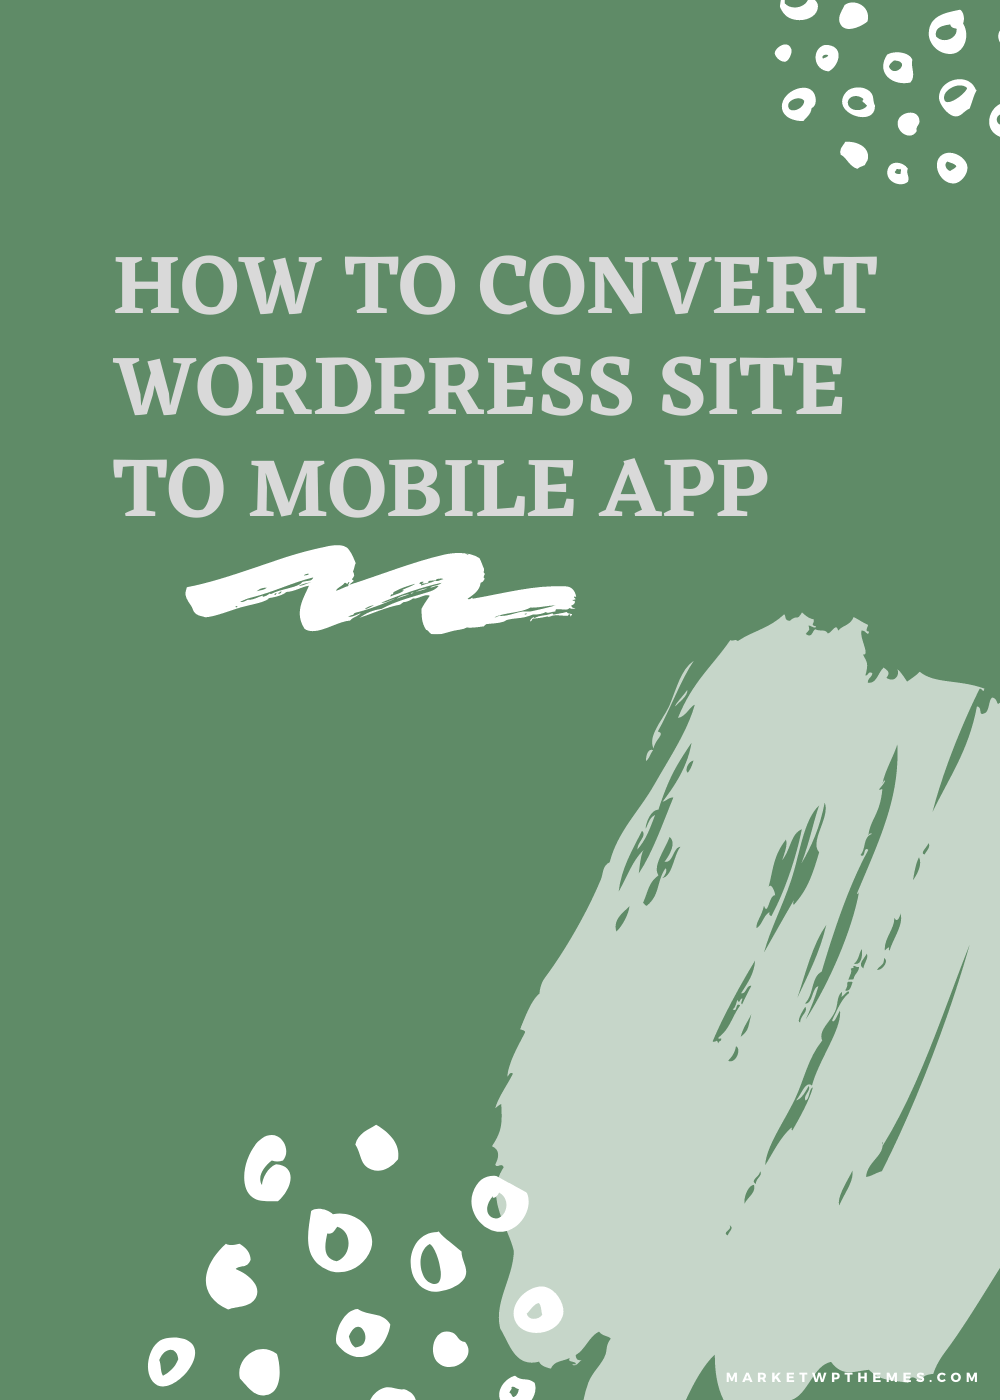 How To Convert WordPress Site To Mobile App